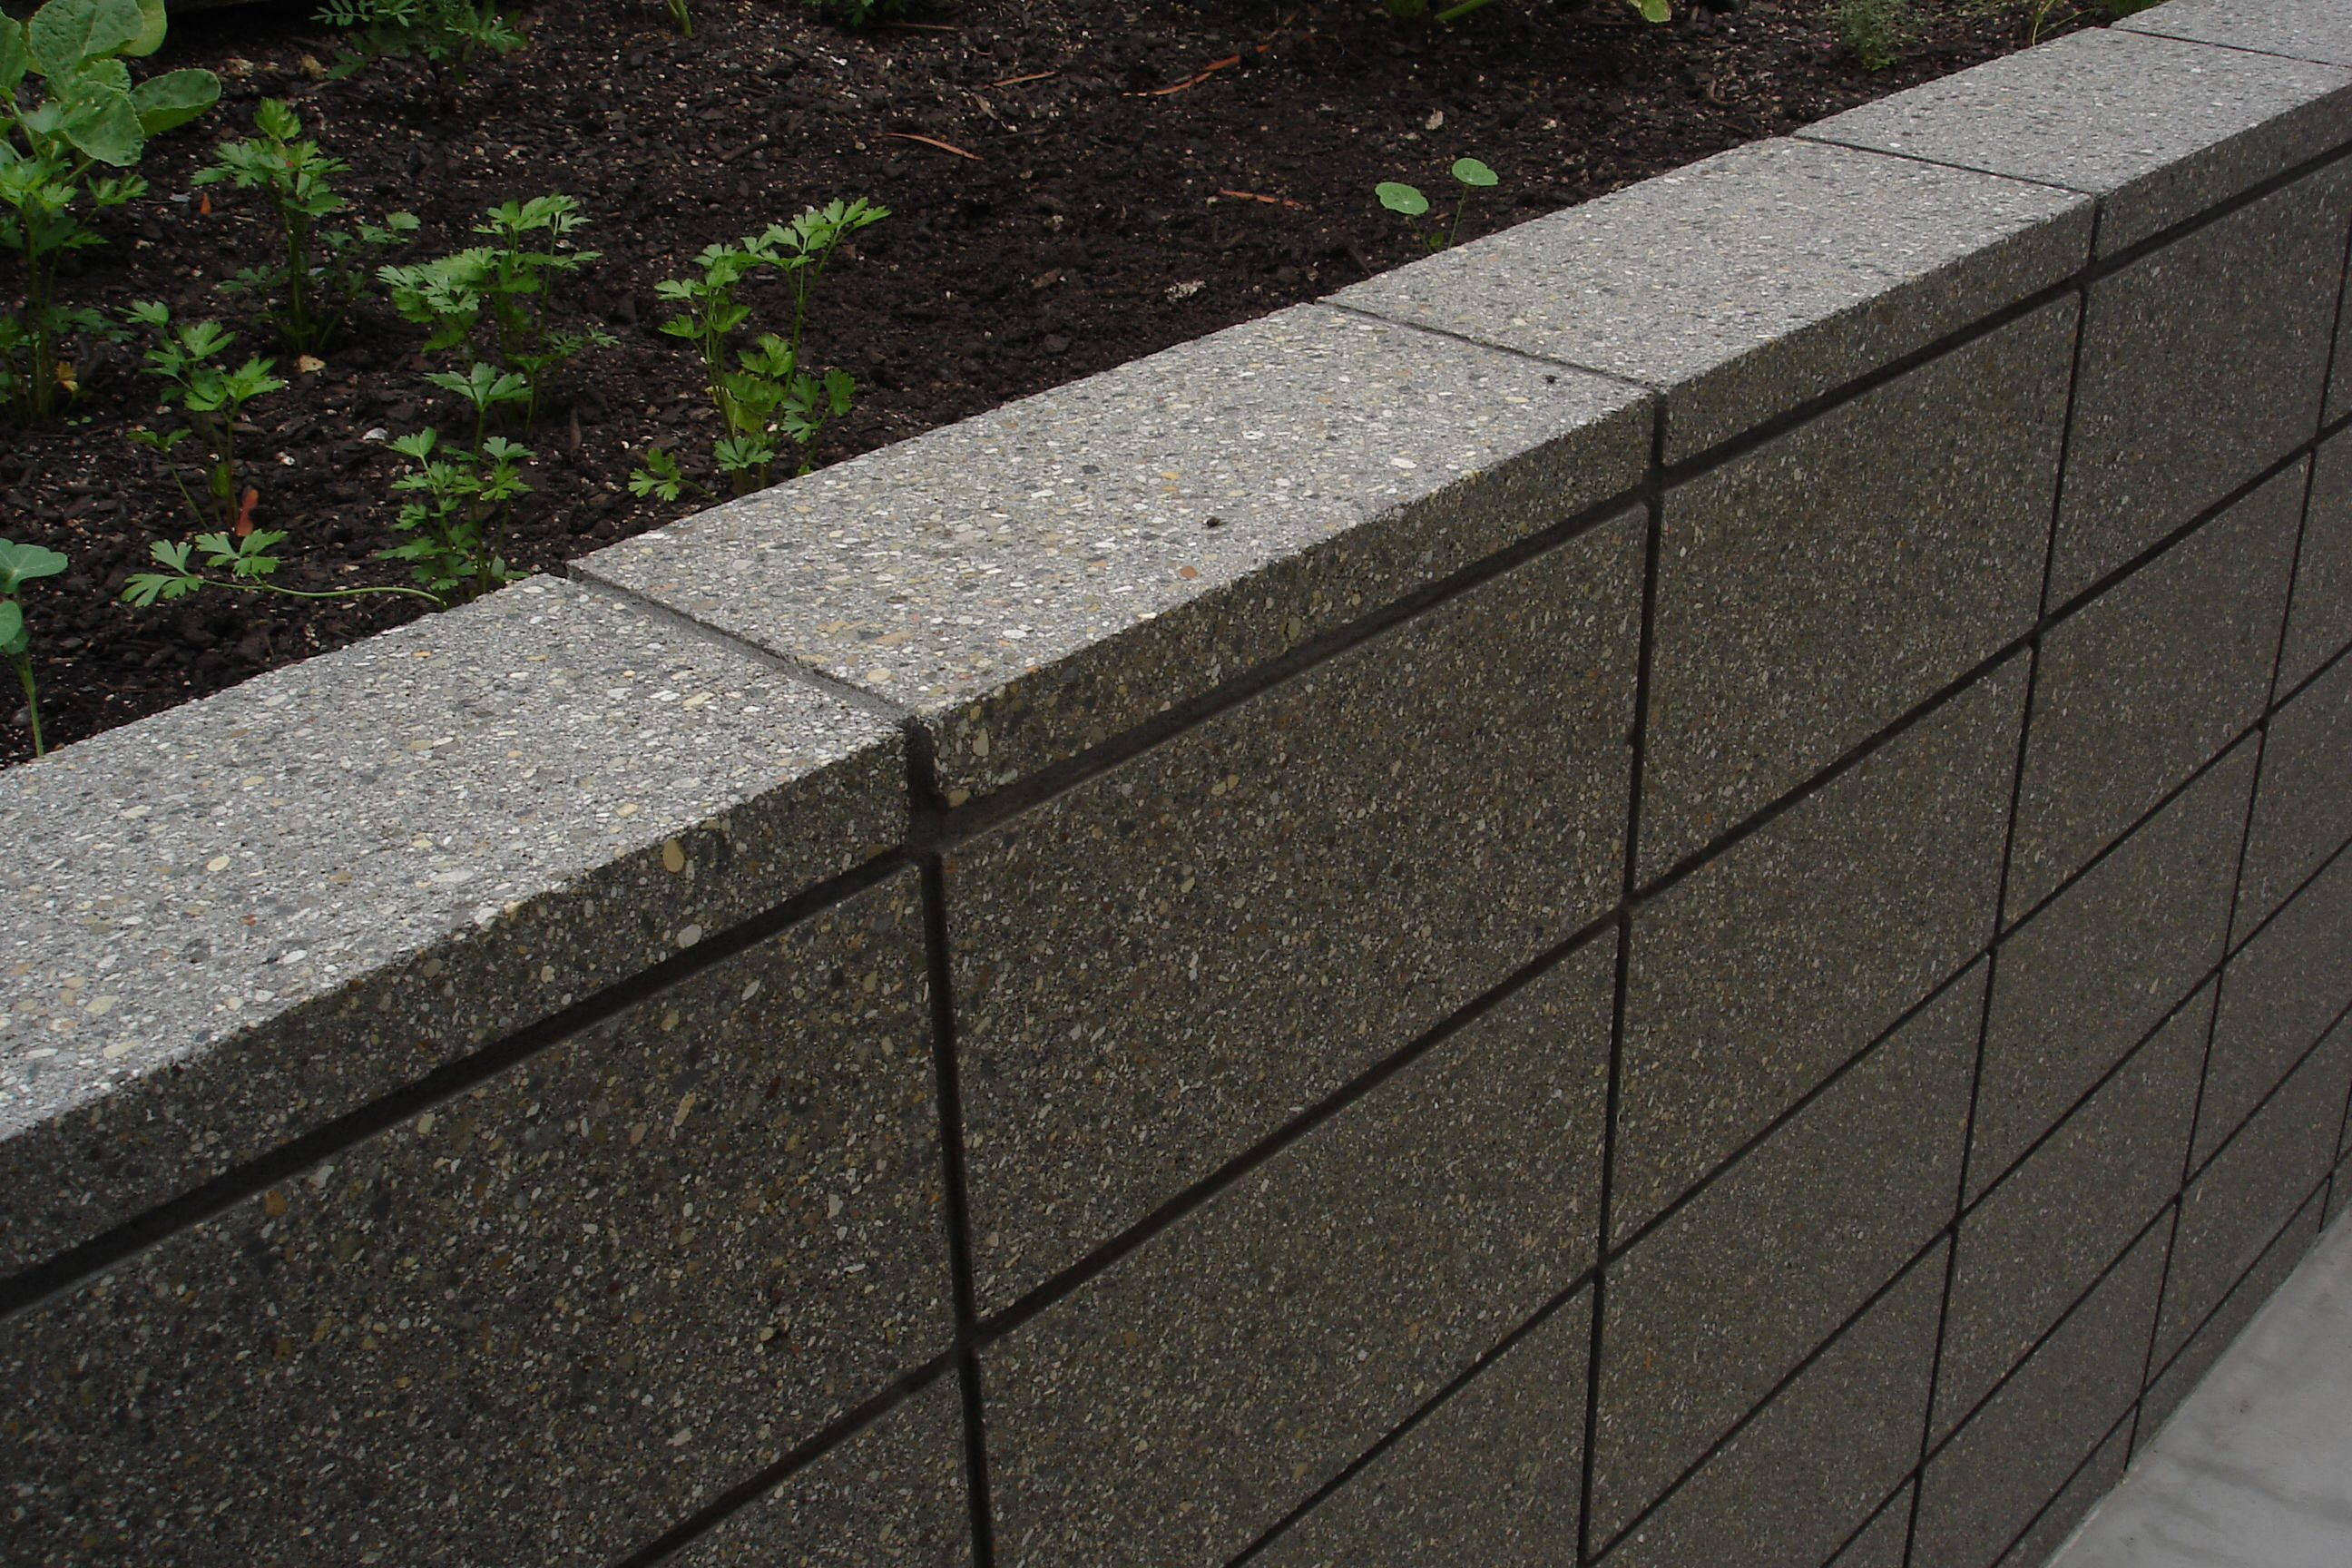 Honed Grey Coloured Masonry Retaining Wall Sealed In A Wet Look Sealer.  Tasty Concrete Block Retaining Wall Design ...